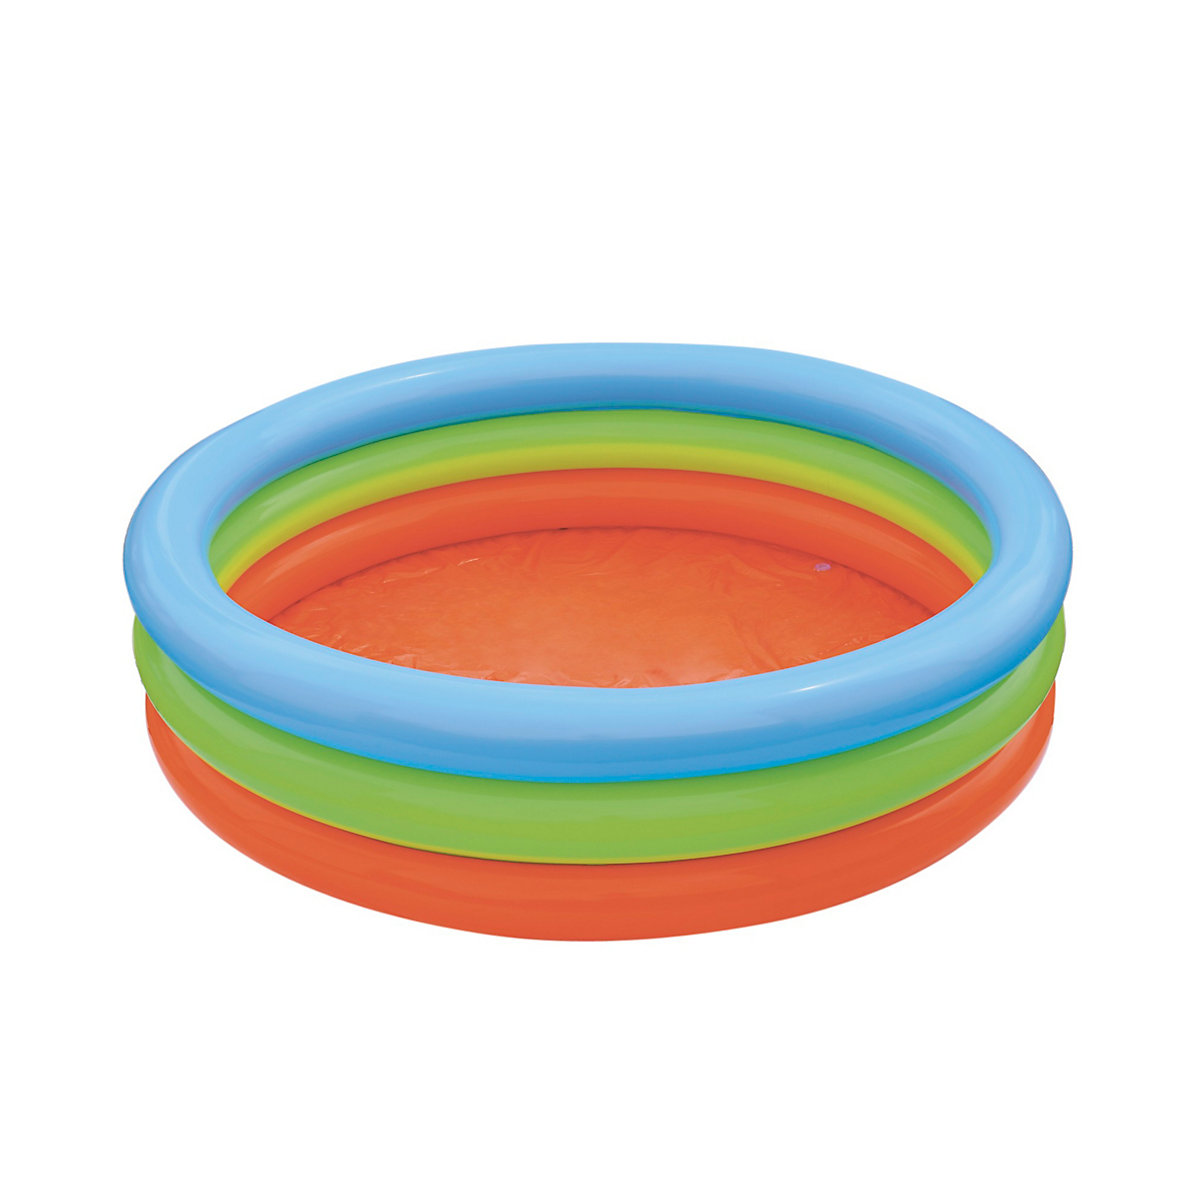 3 Ring Pool Toy From 3 Years